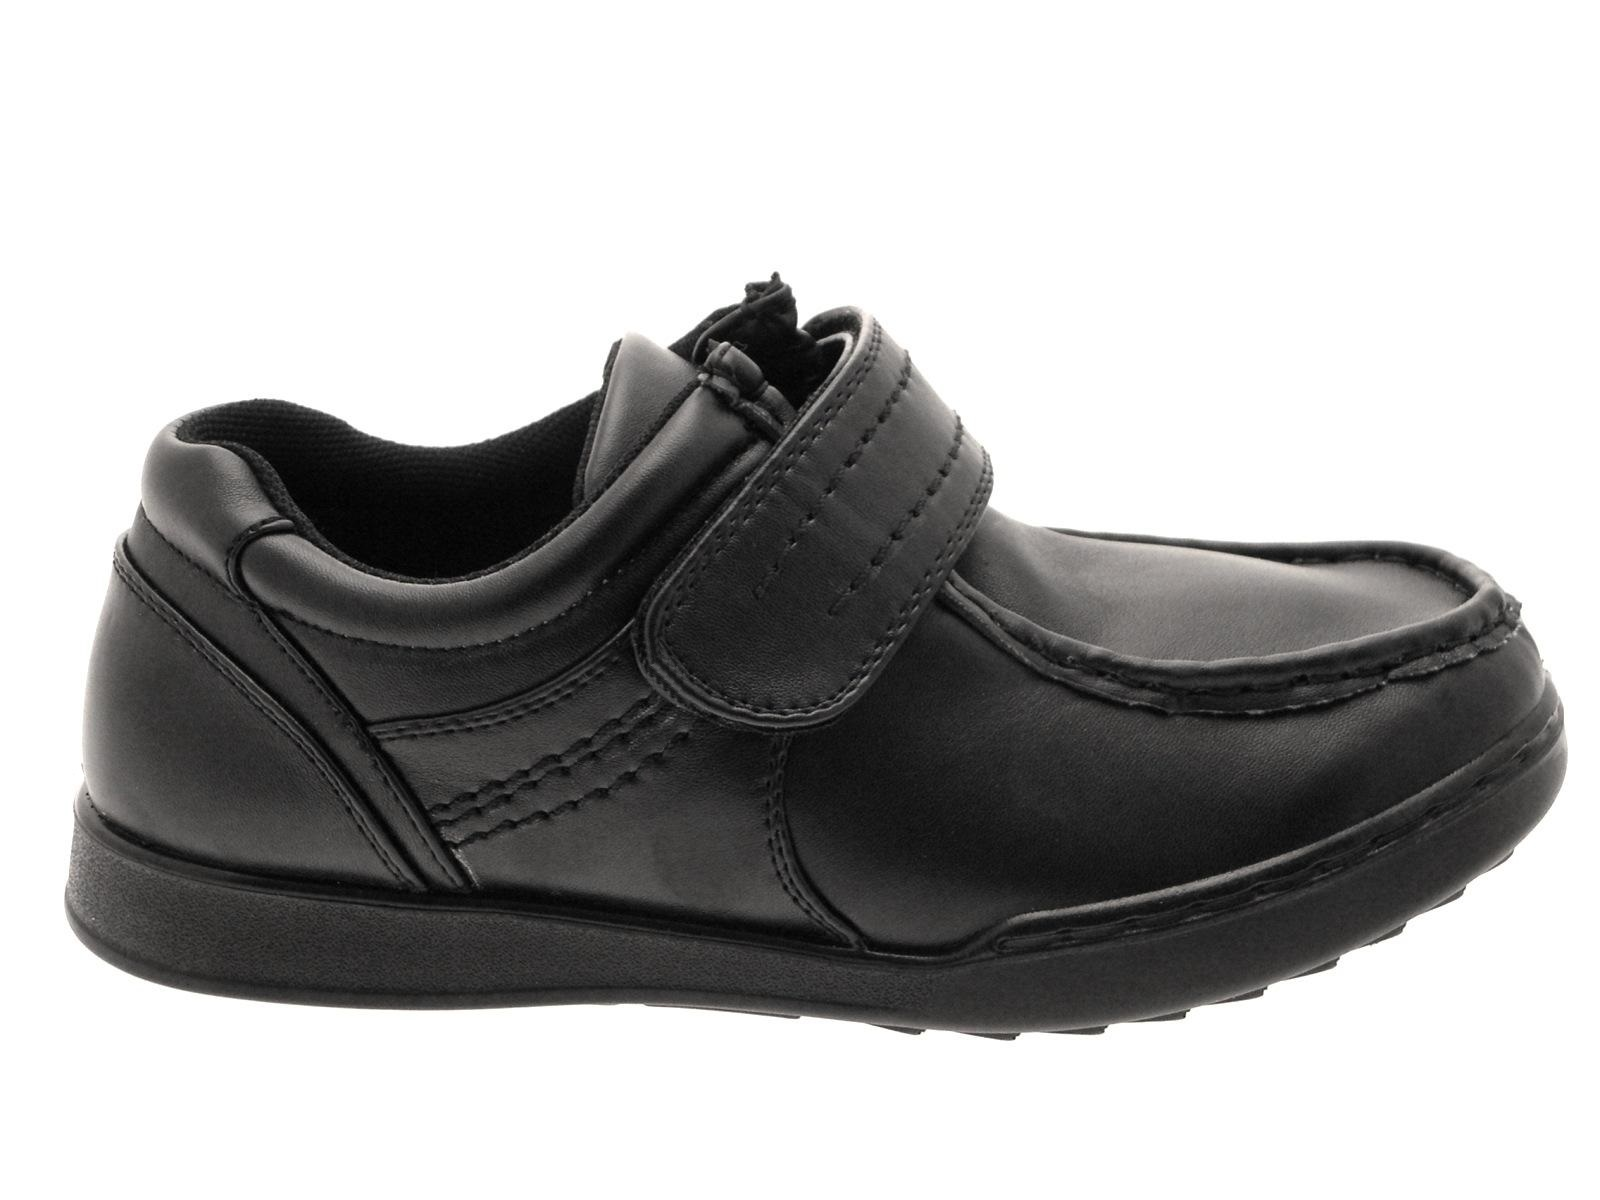 boys black school shoes faux leather adjustable